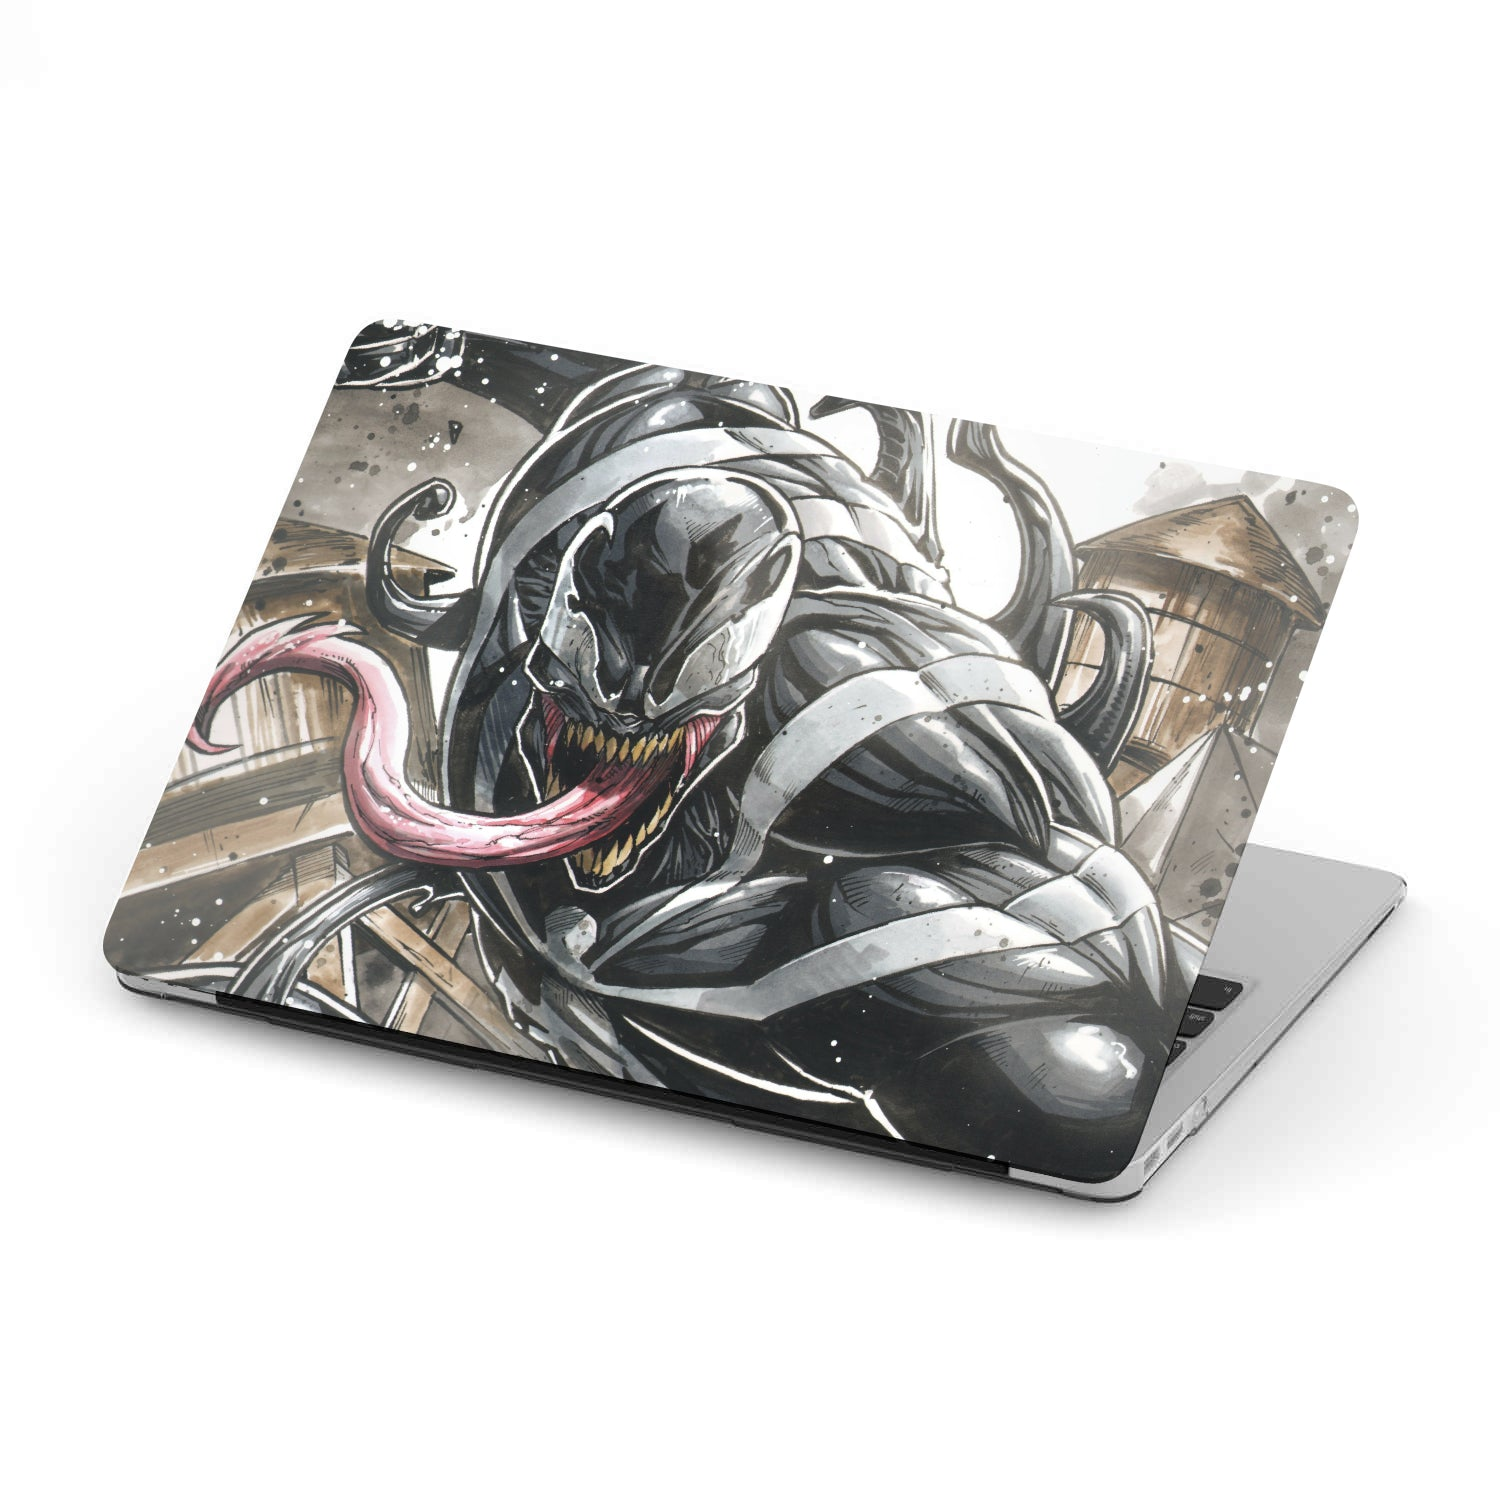 Angry Venom - MacBook case - fastandtune